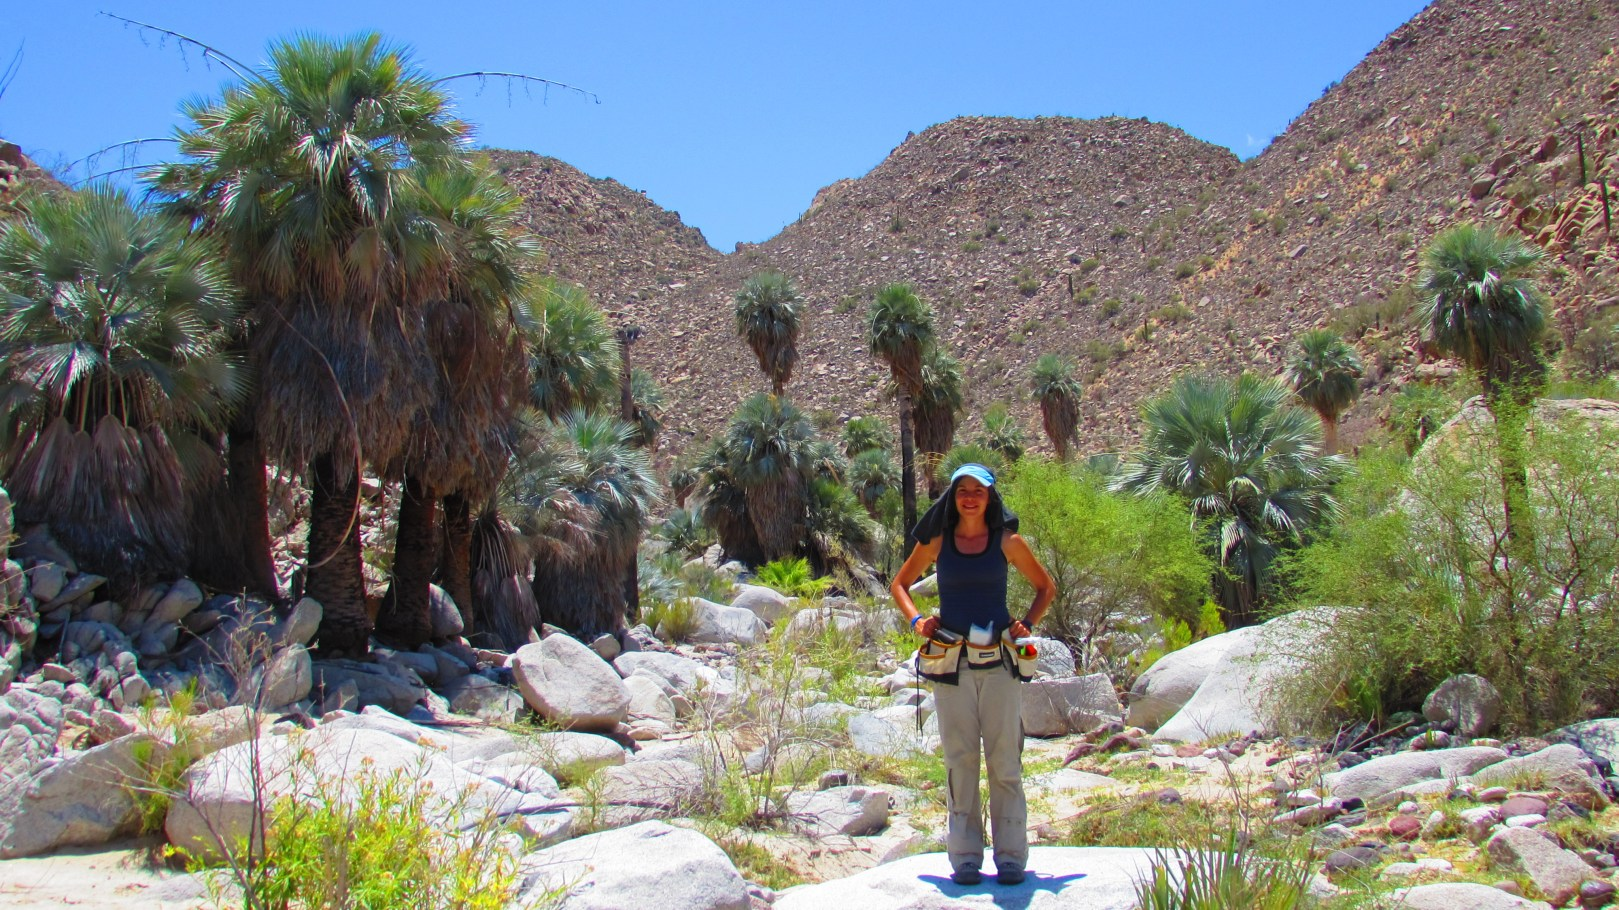 Lorena standing in the desert in Berrendo with tools around her belt and a hat to protect her from the sun.